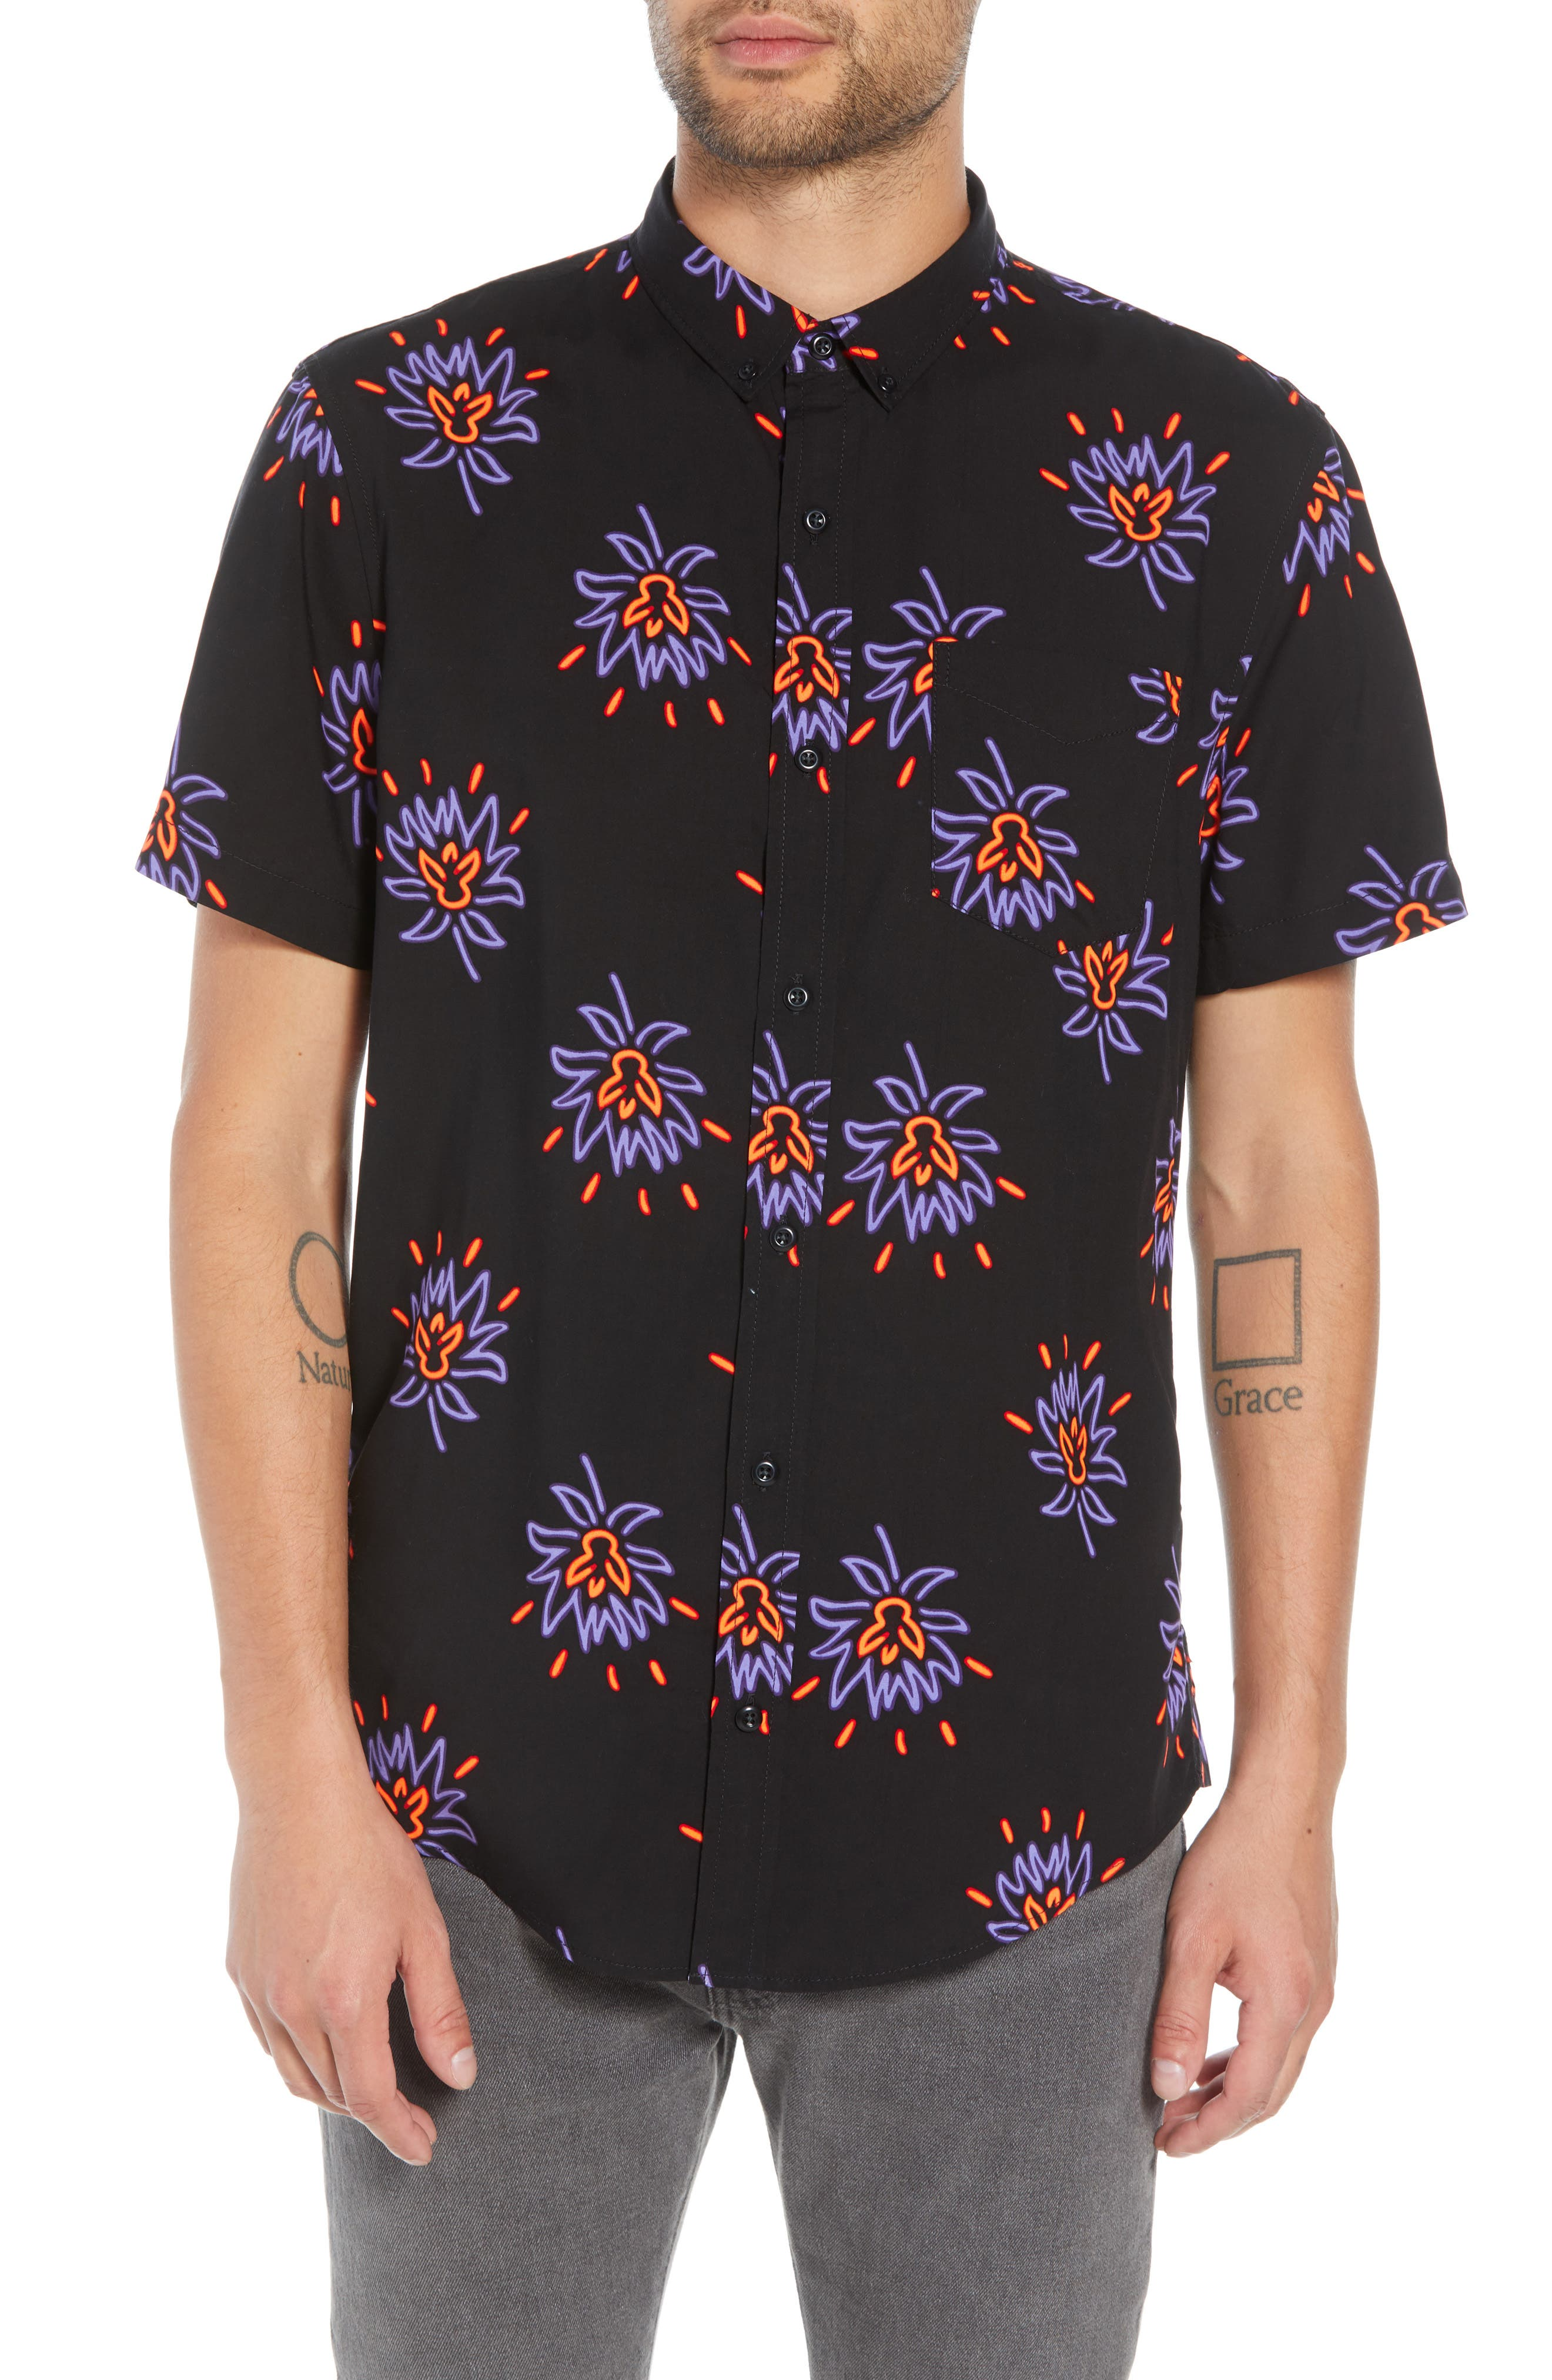 Neon Flower Print Woven Shirt,                         Main,                         color, BLACK PURPLE NEON FLORAL